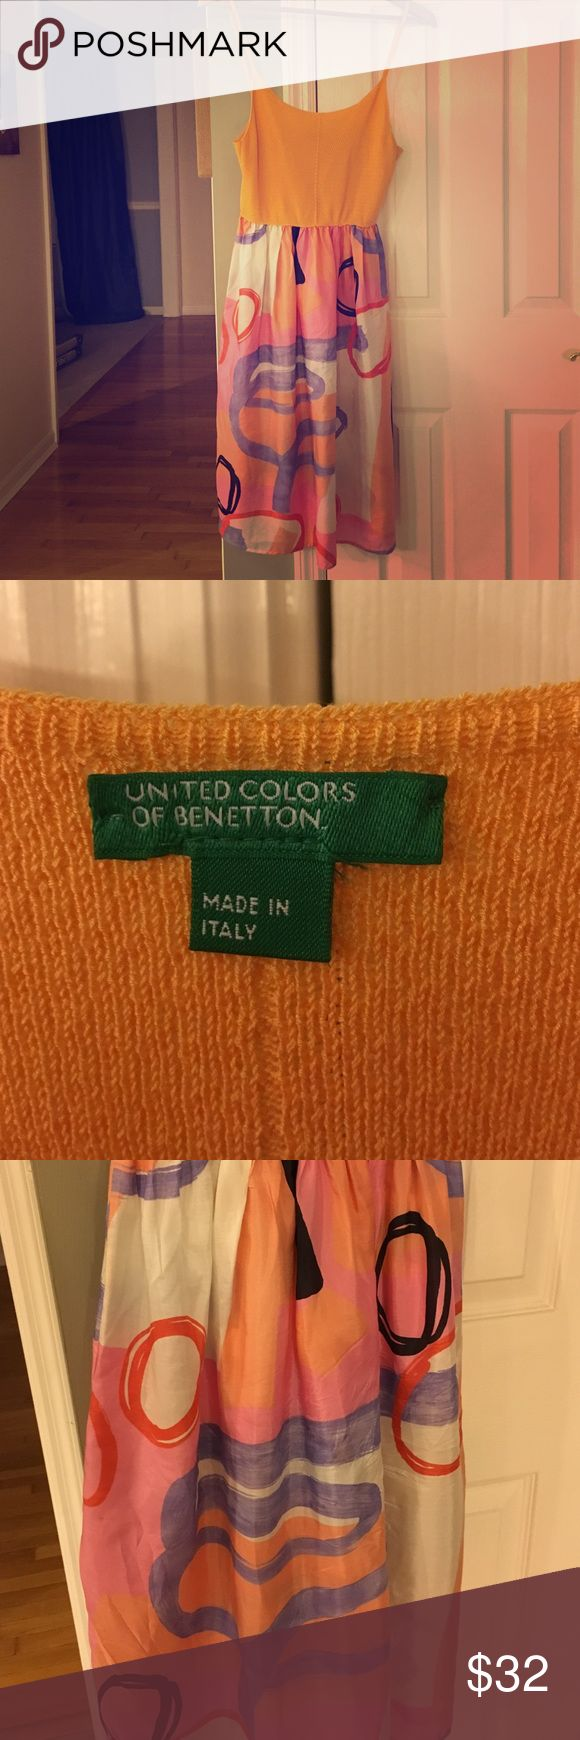 Silk United Colors of Benetton dress. Unique silk United Colors of Benetton dress with woven top and multi-color abstract print skirt. Great over a top and jeans in winter or alone in summer. Hand wash. United Colors Of Benetton Dresses